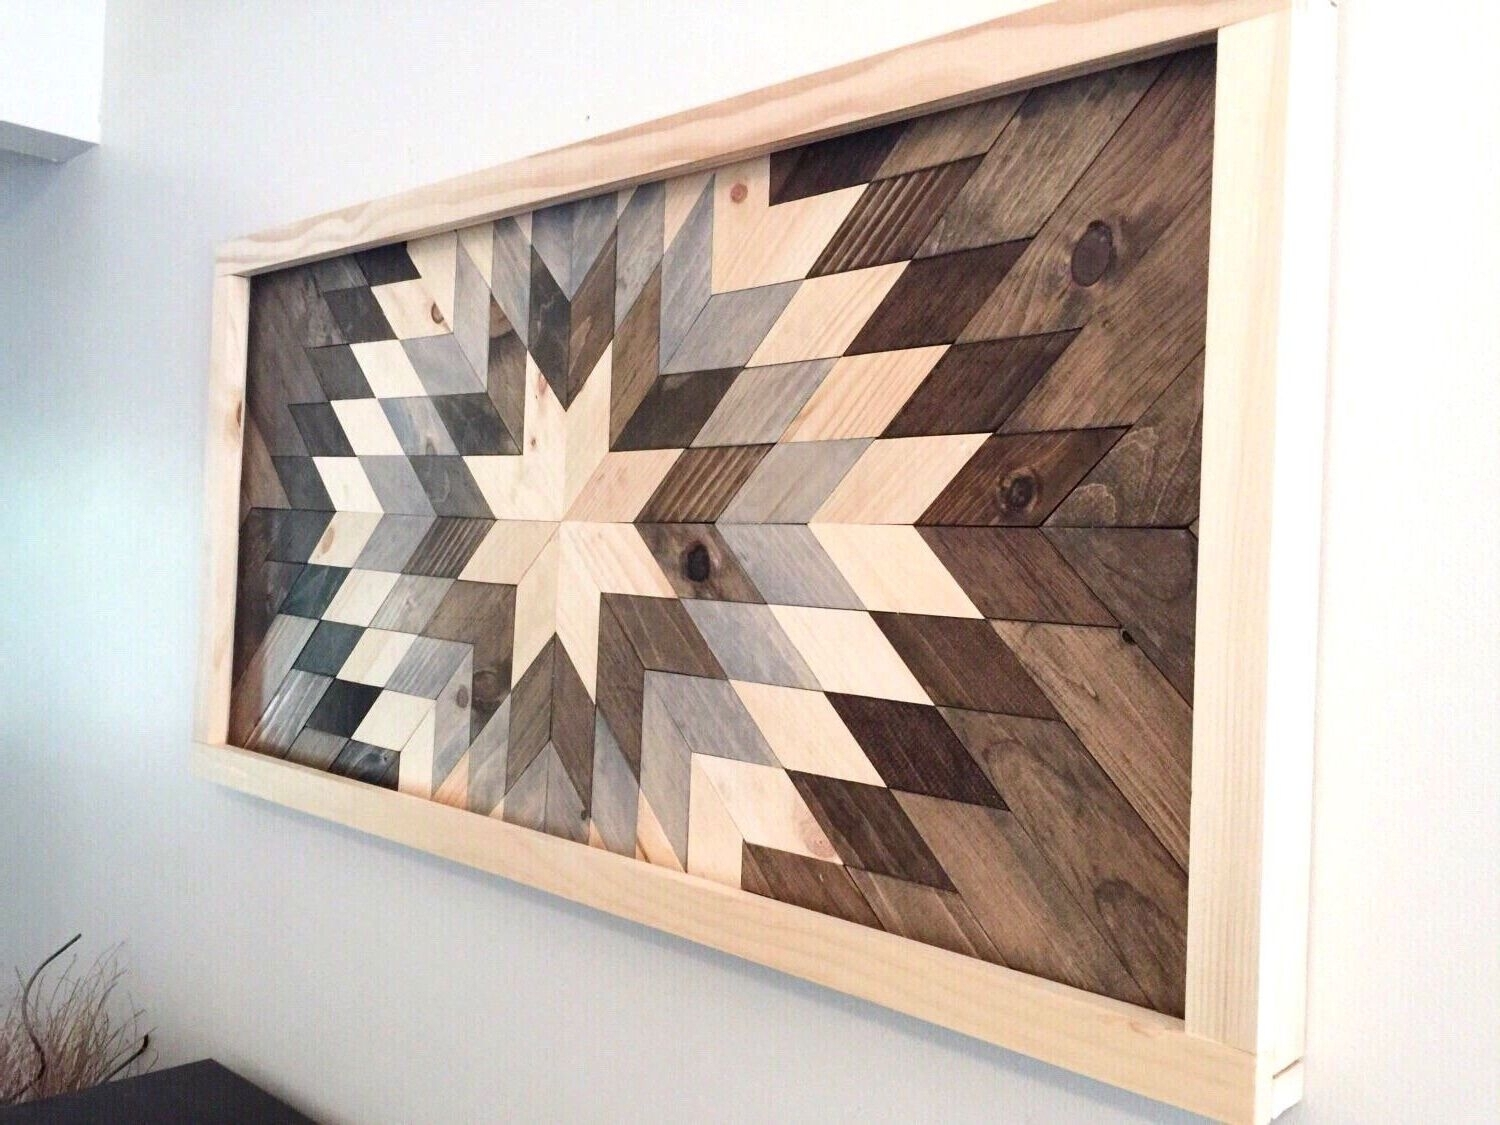 Wood Decor Wall Art Wood Wall Art Diy Excellent Wooden Decor Ideas For Most Popular Wood Wall Art Diy (View 12 of 15)